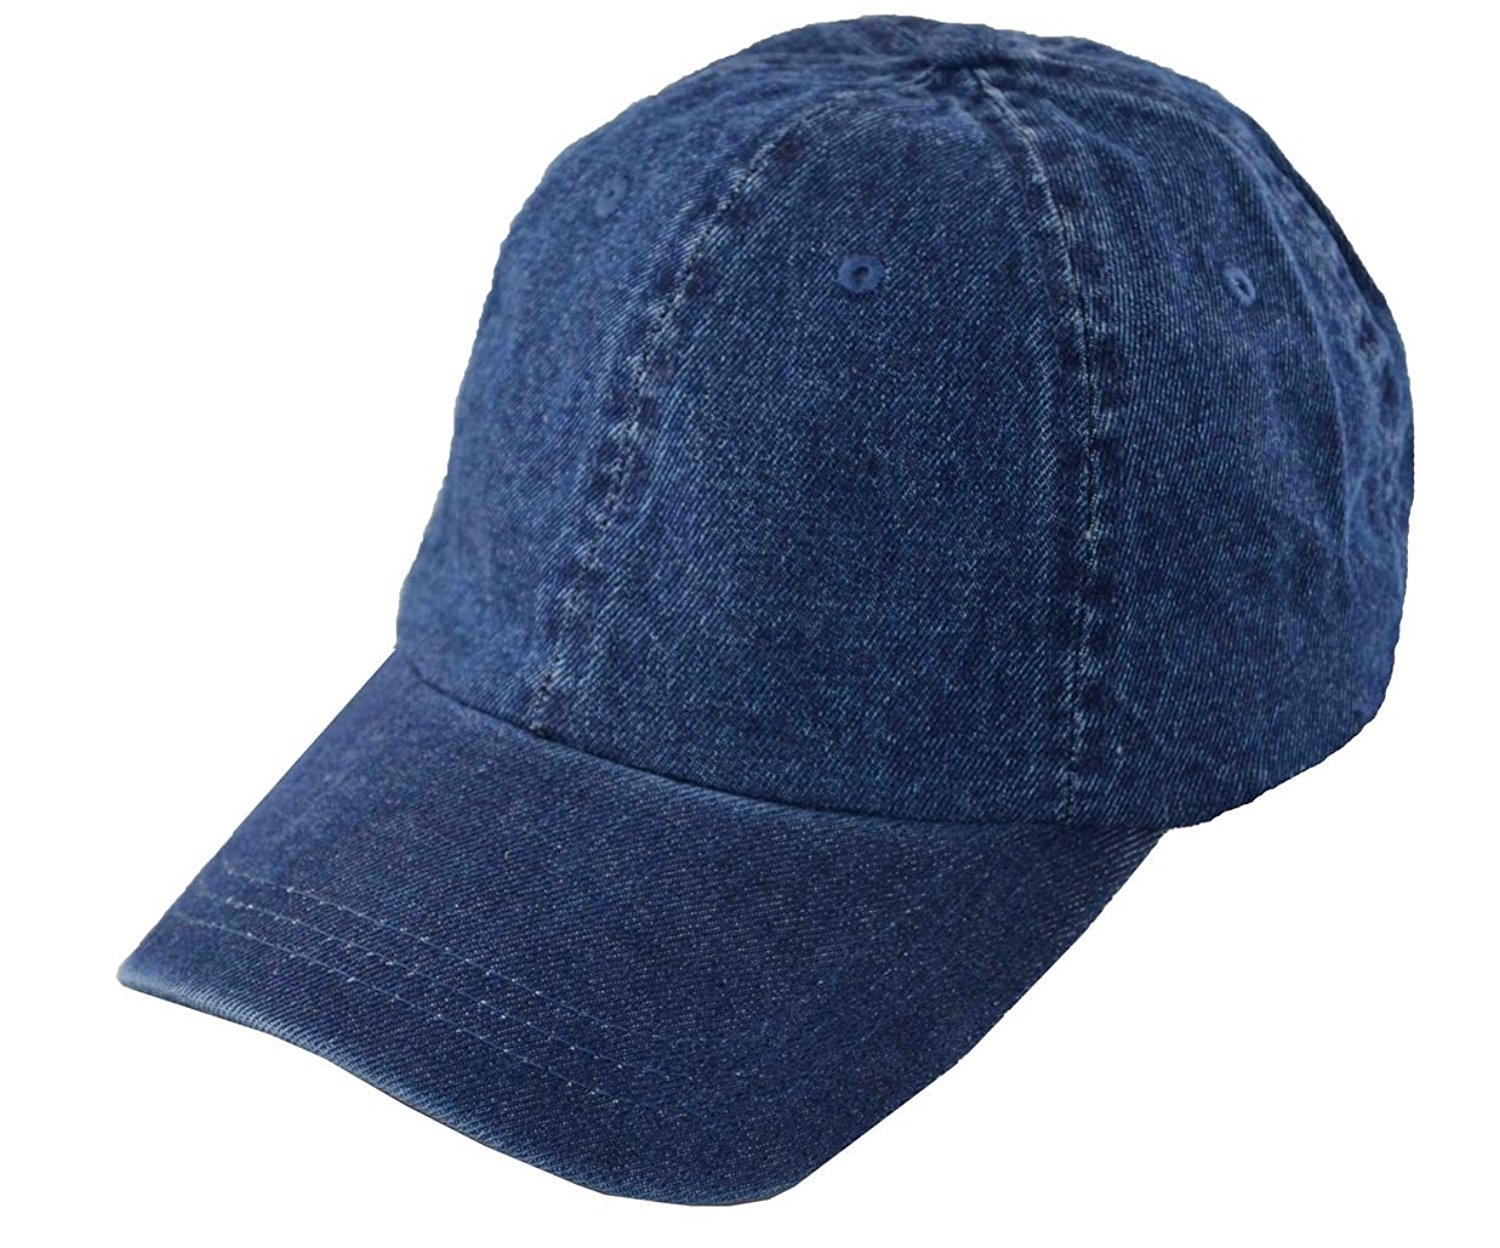 G Men's Polo Style Adjustable Unstructured Low-profile Baseball Cap Denim Jean